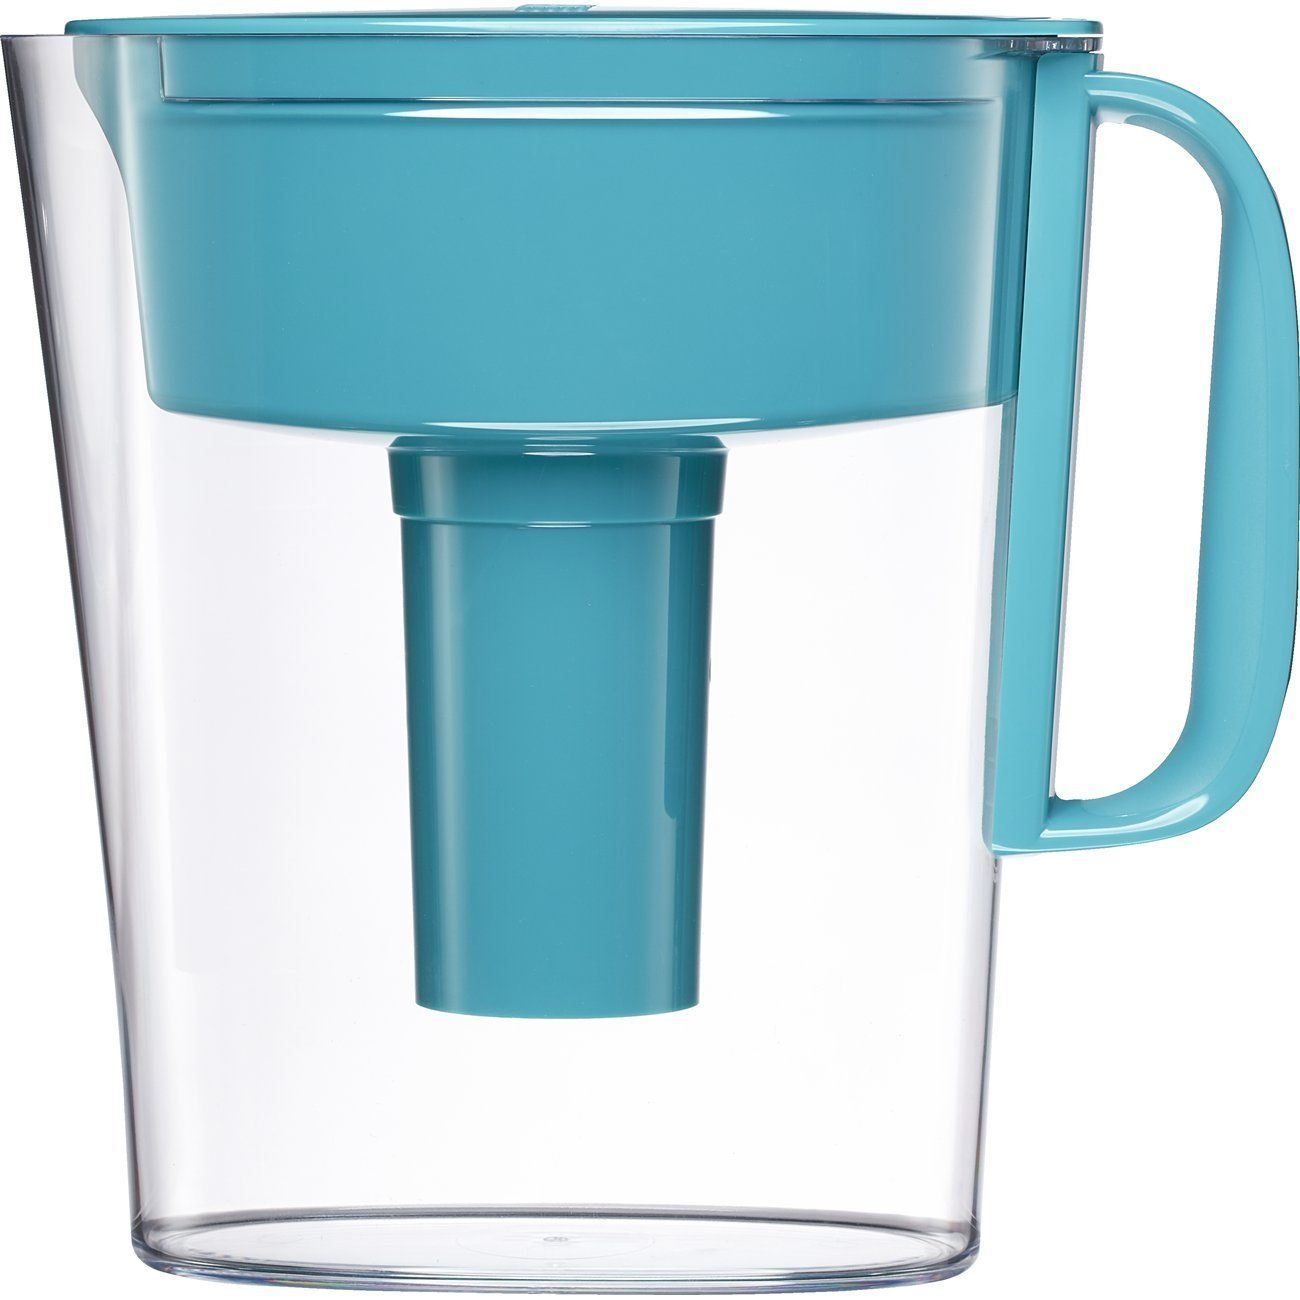 "<p>These filters make sure your water genuinely tastes like water.&nbsp&#x3B;</p><p><strong data-verified=""redactor"" data-redactor-tag=""strong""><em data-verified=""redactor"" data-redactor-tag=""em"">BUY NOW: Brita, 25% off, <a href=""https://www.amazon.com/Brita-Metro-Water-Pitcher-Filter/dp/B01G9ADQYG/"" target=""_blank"" data-tracking-id=""recirc-text-link"">amazon.com</a></em></strong><a href=""https://www.amazon.com/Brita-Metro-Water-Pitcher-Filter/dp/B01G9ADQYG/""></a></p>"